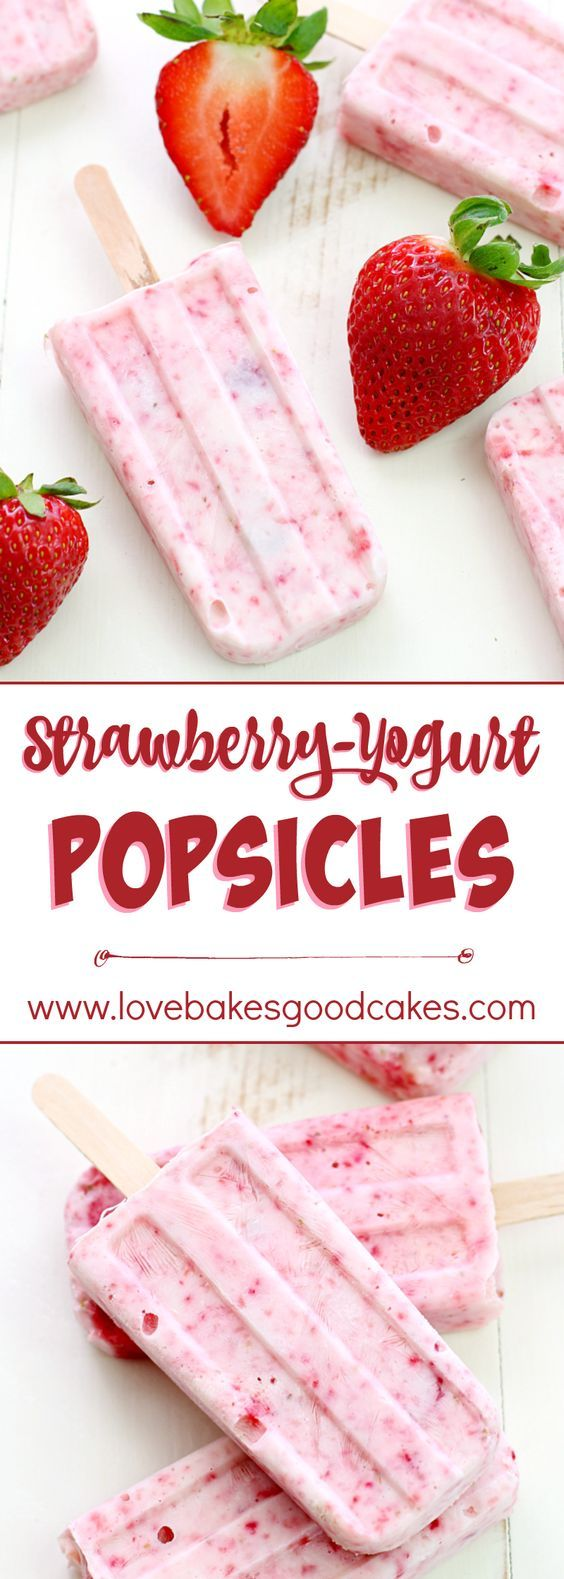 Strawberry-Yogurt Popsicles ~ made with just 2 healthy ingredients!